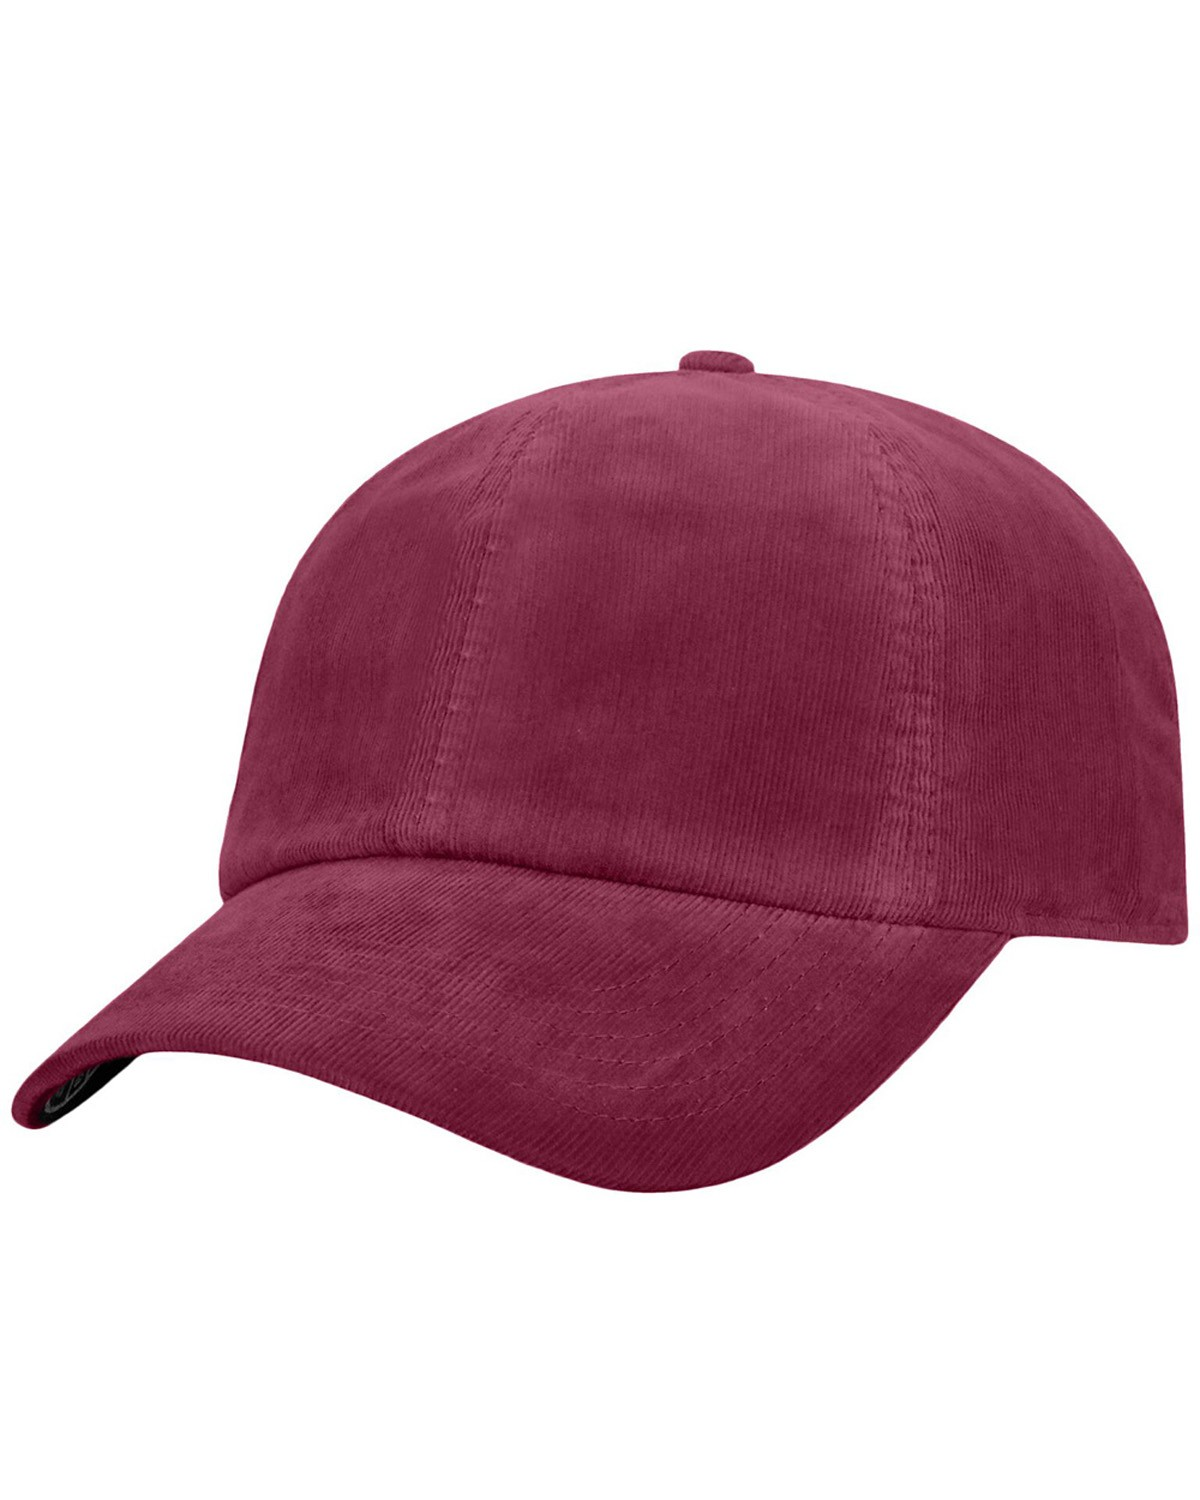 TW5507 Top Of The World BURGUNDY